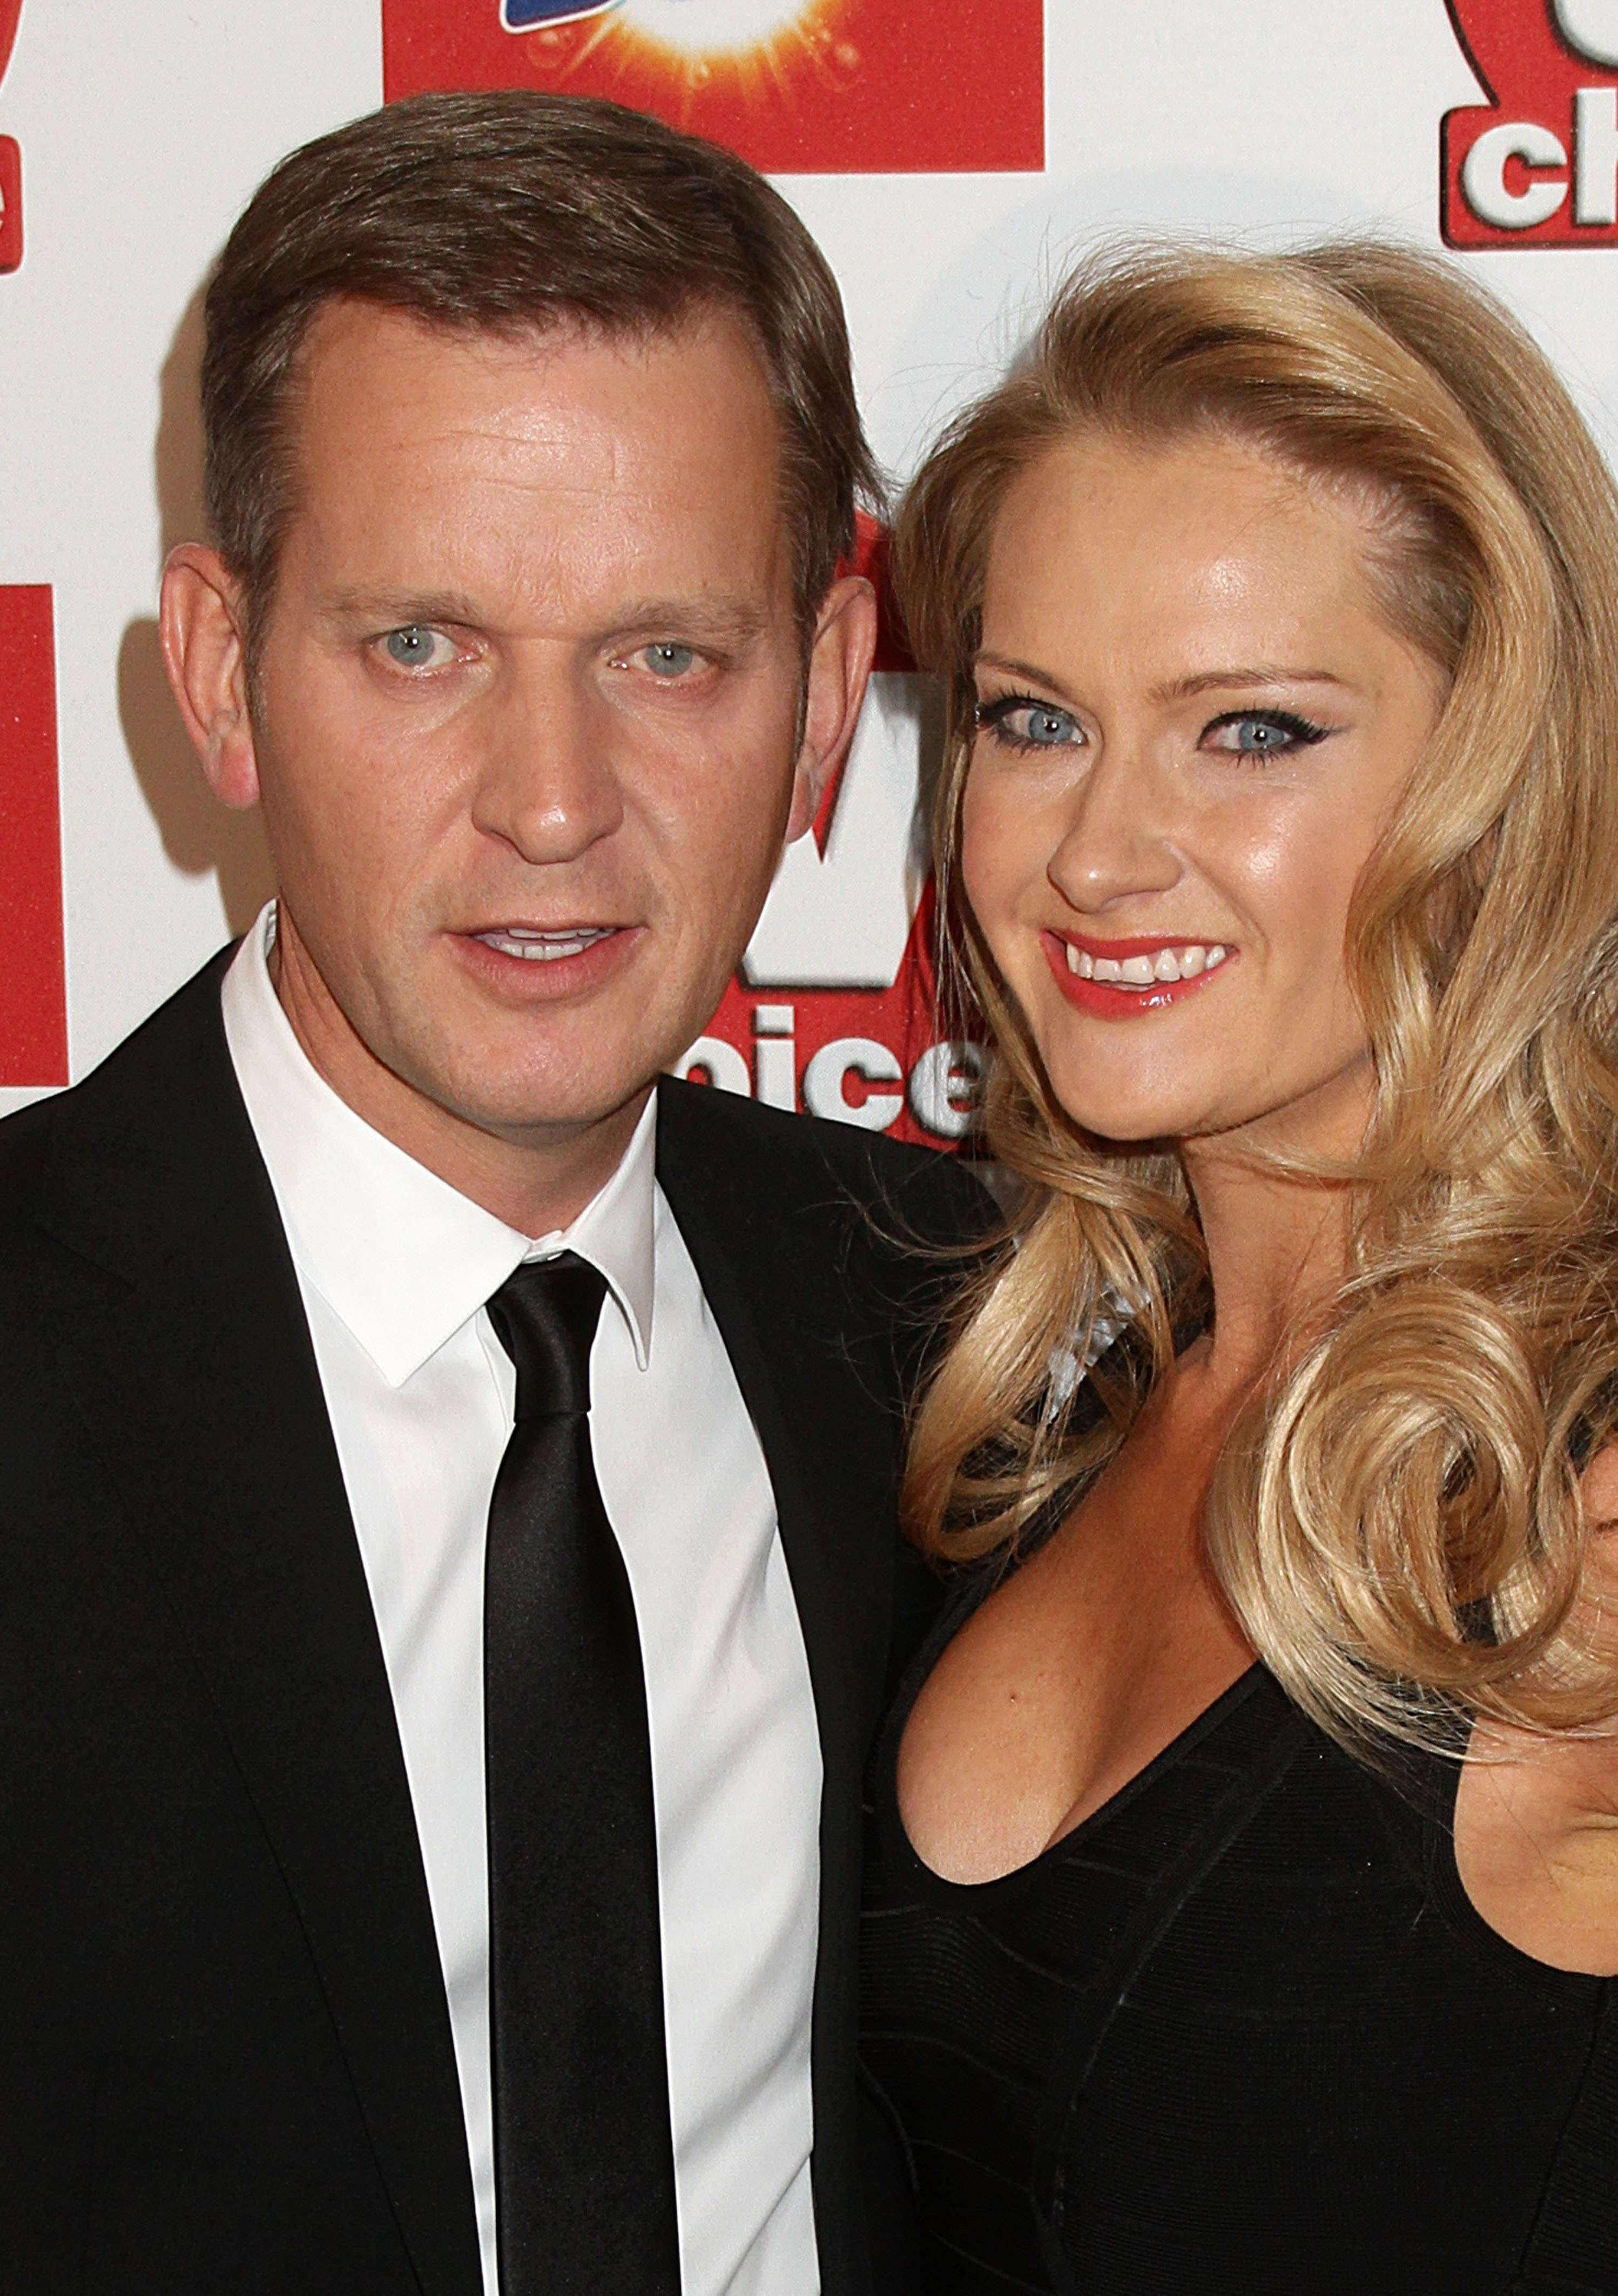 kyle55 Jeremy Kyles Divorce Is Like An Episode Of His TV Show